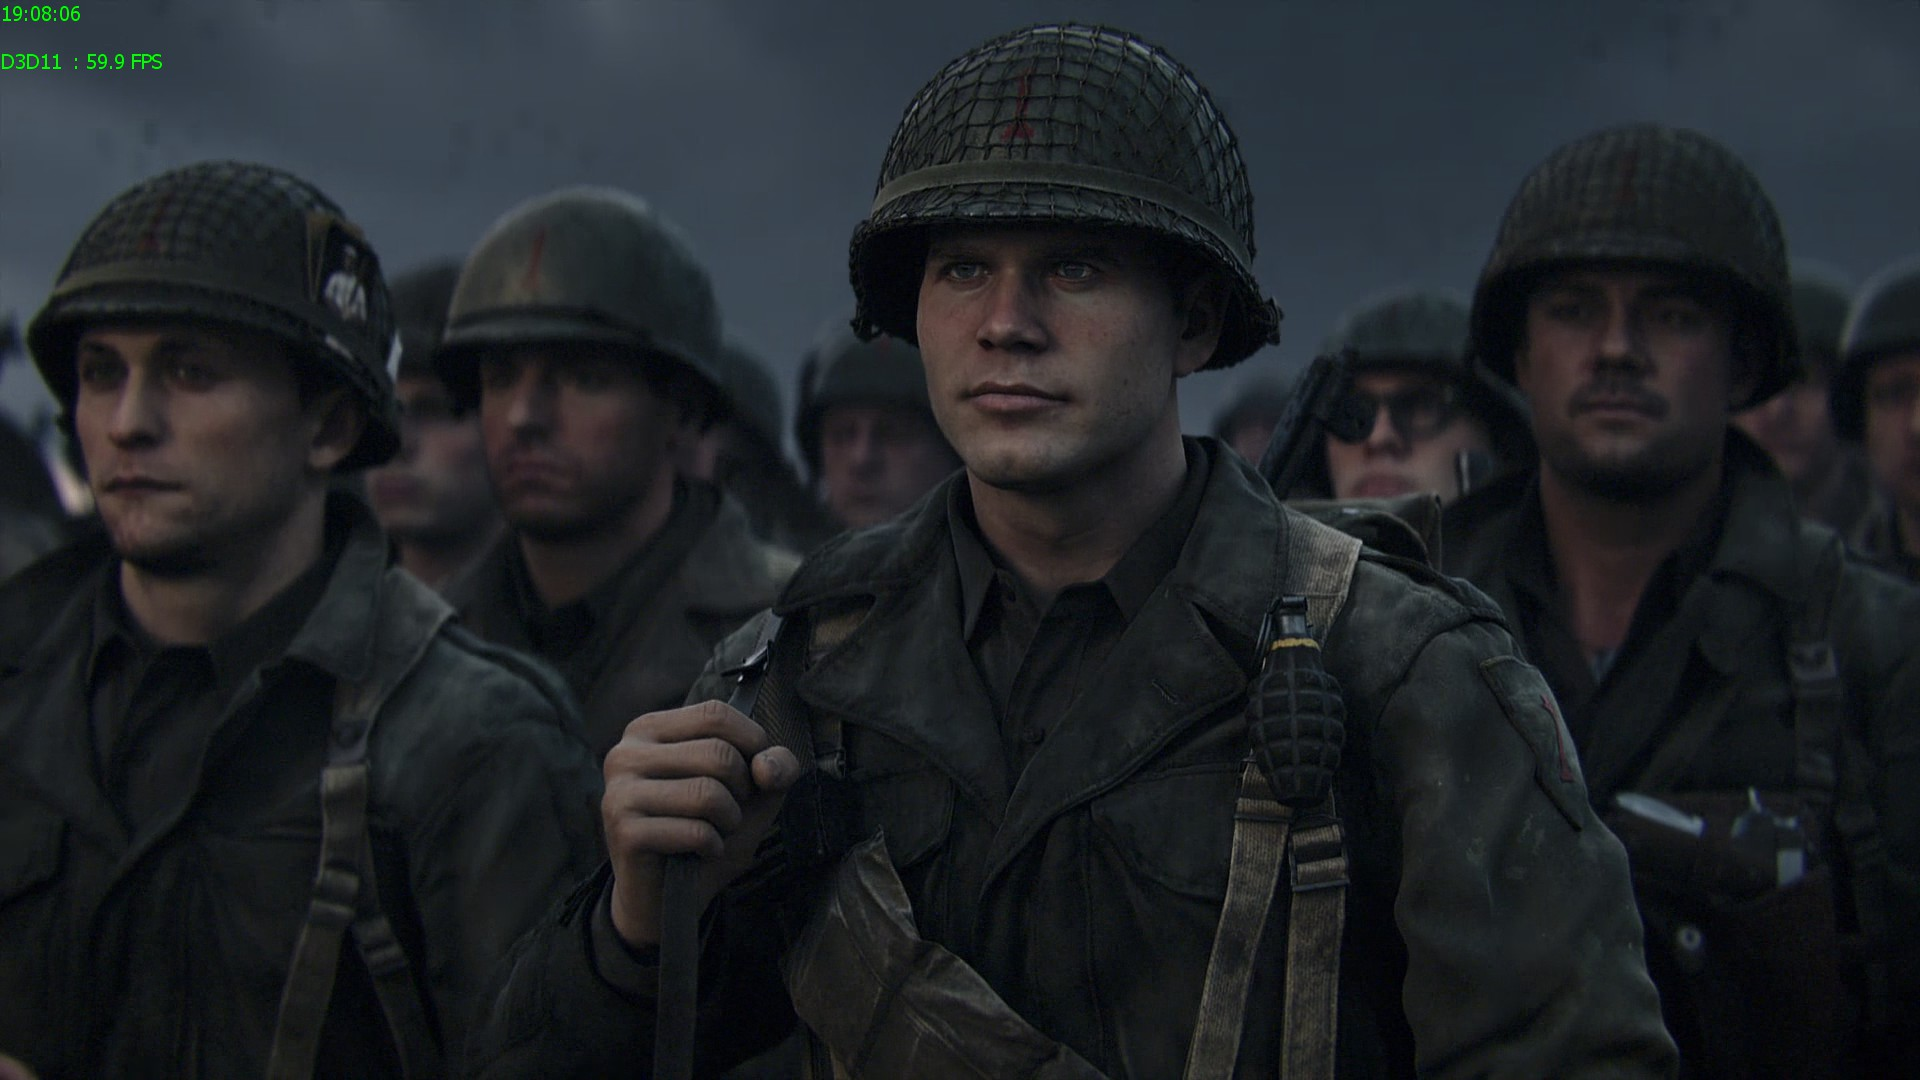 Call of Duty WWII Review Experience gaming without bias 1920x1080